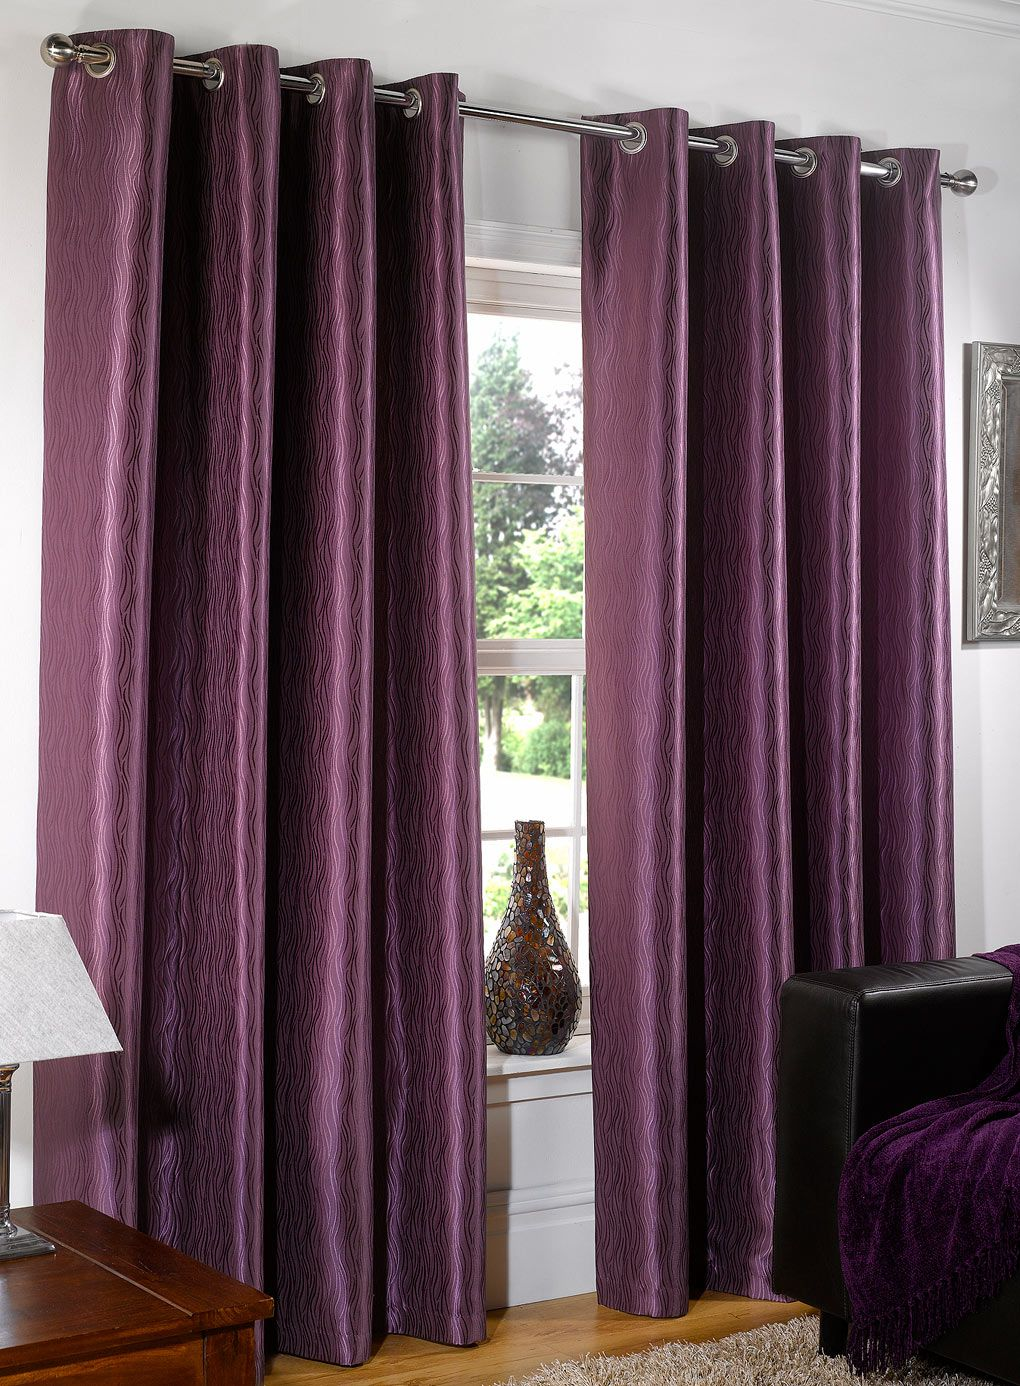 Emejing Plum Bedroom Curtains Images - Resport.us - resport.us